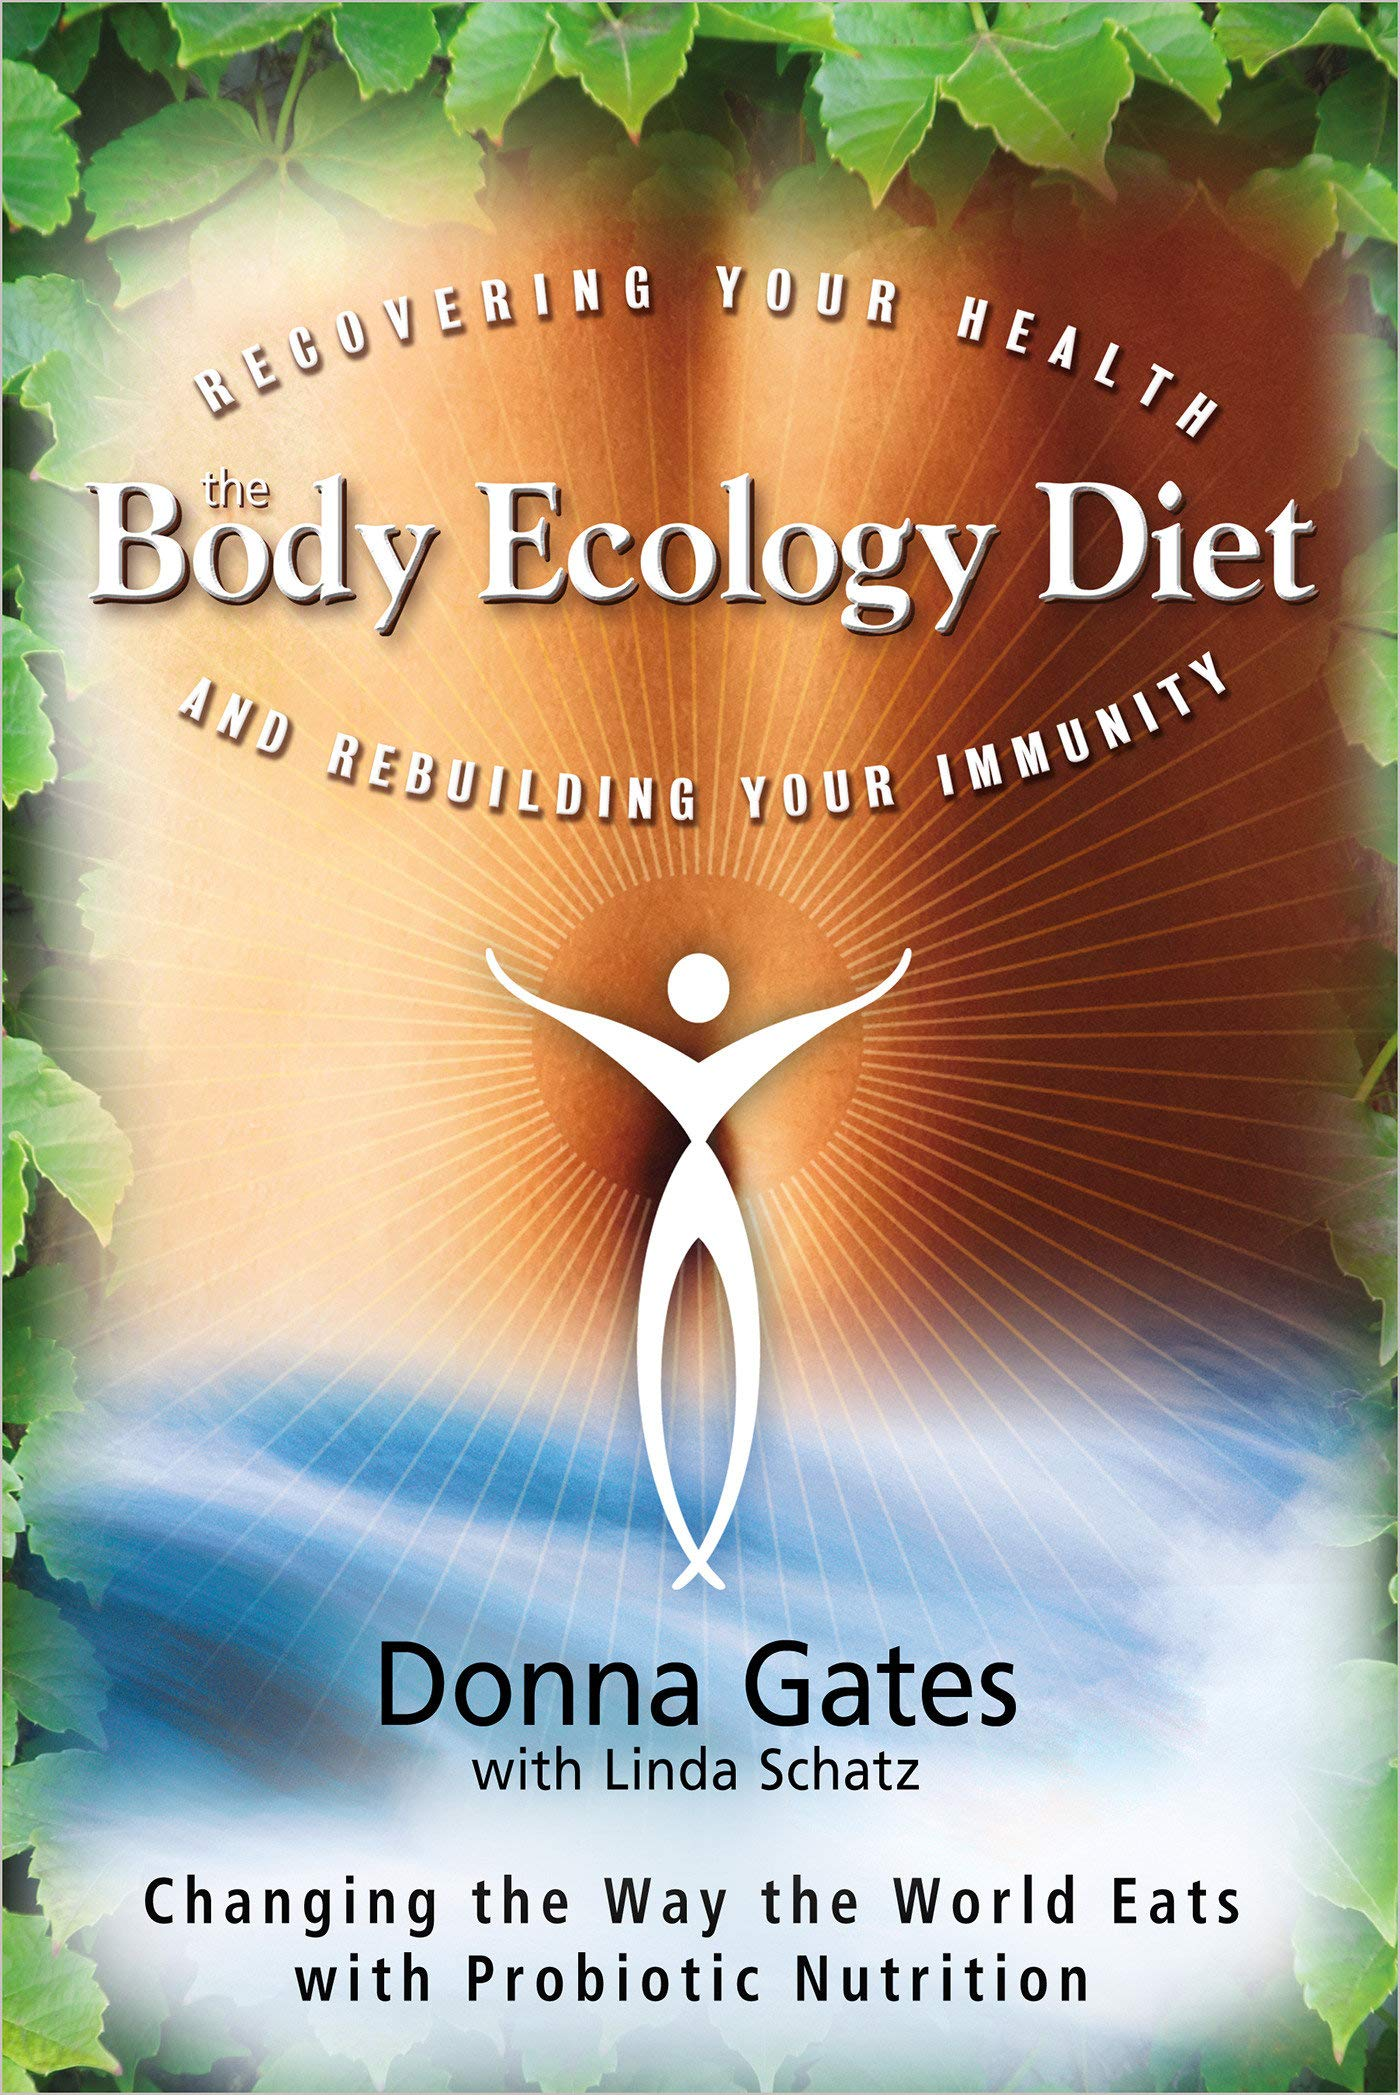 """the body ecology diet - By Donna GatesIf you're experiencing discomfort, fatigue, or other symptoms that won't go away no matter what you do or how many doctors you see, chances are you're one of the millions unknowingly suffering from a systemic fungal/yeast infection, """"the hidden invader."""" The result of an imbalance starting in your internal ecosystem, this can be a key factor in headaches, joint and muscle pain, depression, cancer, food allergies, digestive problems, autism, and other immune-related disordersThe Body Ecology Diet reveals how to restore and maintain the """"inner ecology"""" your body needs to function properly, and eliminate or control the symptoms that rob you of the joy of living. Tens of thousands of people have already benefited from the Body Ecology way of life—Donna Gates shows you, step-by-step, how to eat your way to better health and well-being . . . deliciously, easily, and inexpensively!In this book, you will learn how to: use seven basic universal principles as tools to gain mastery over every health challenge you may encounter; focus on your inner ecology to create ideal digestive balance; conquer cravings with strategies for satisfying snacking and for dining away from home; and plan meals with dozens of delectable recipes, an array of menus, and detailed shopping lists."""